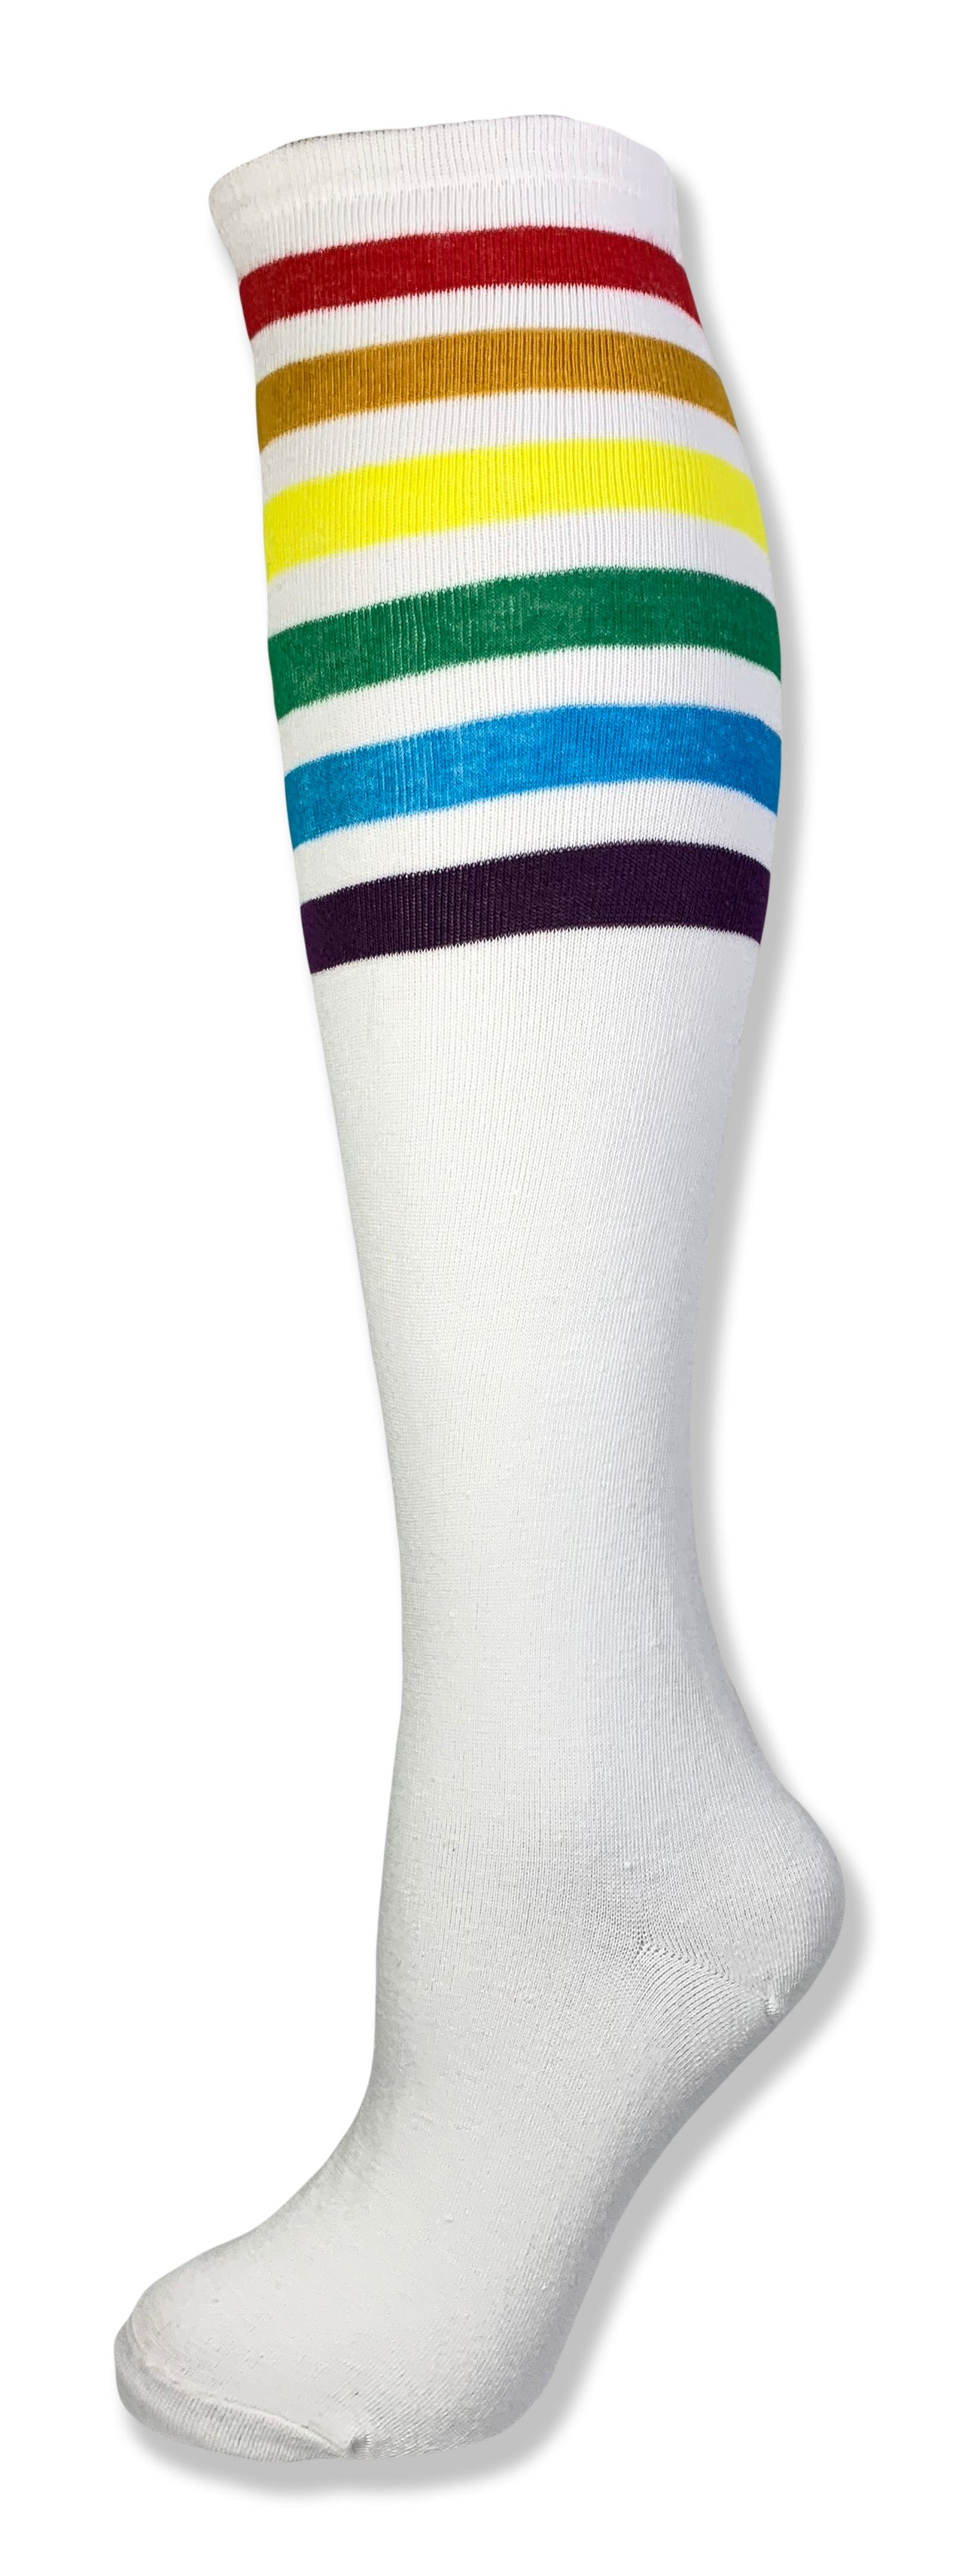 Unisex Rainbow Striped Knee High Tube Sock